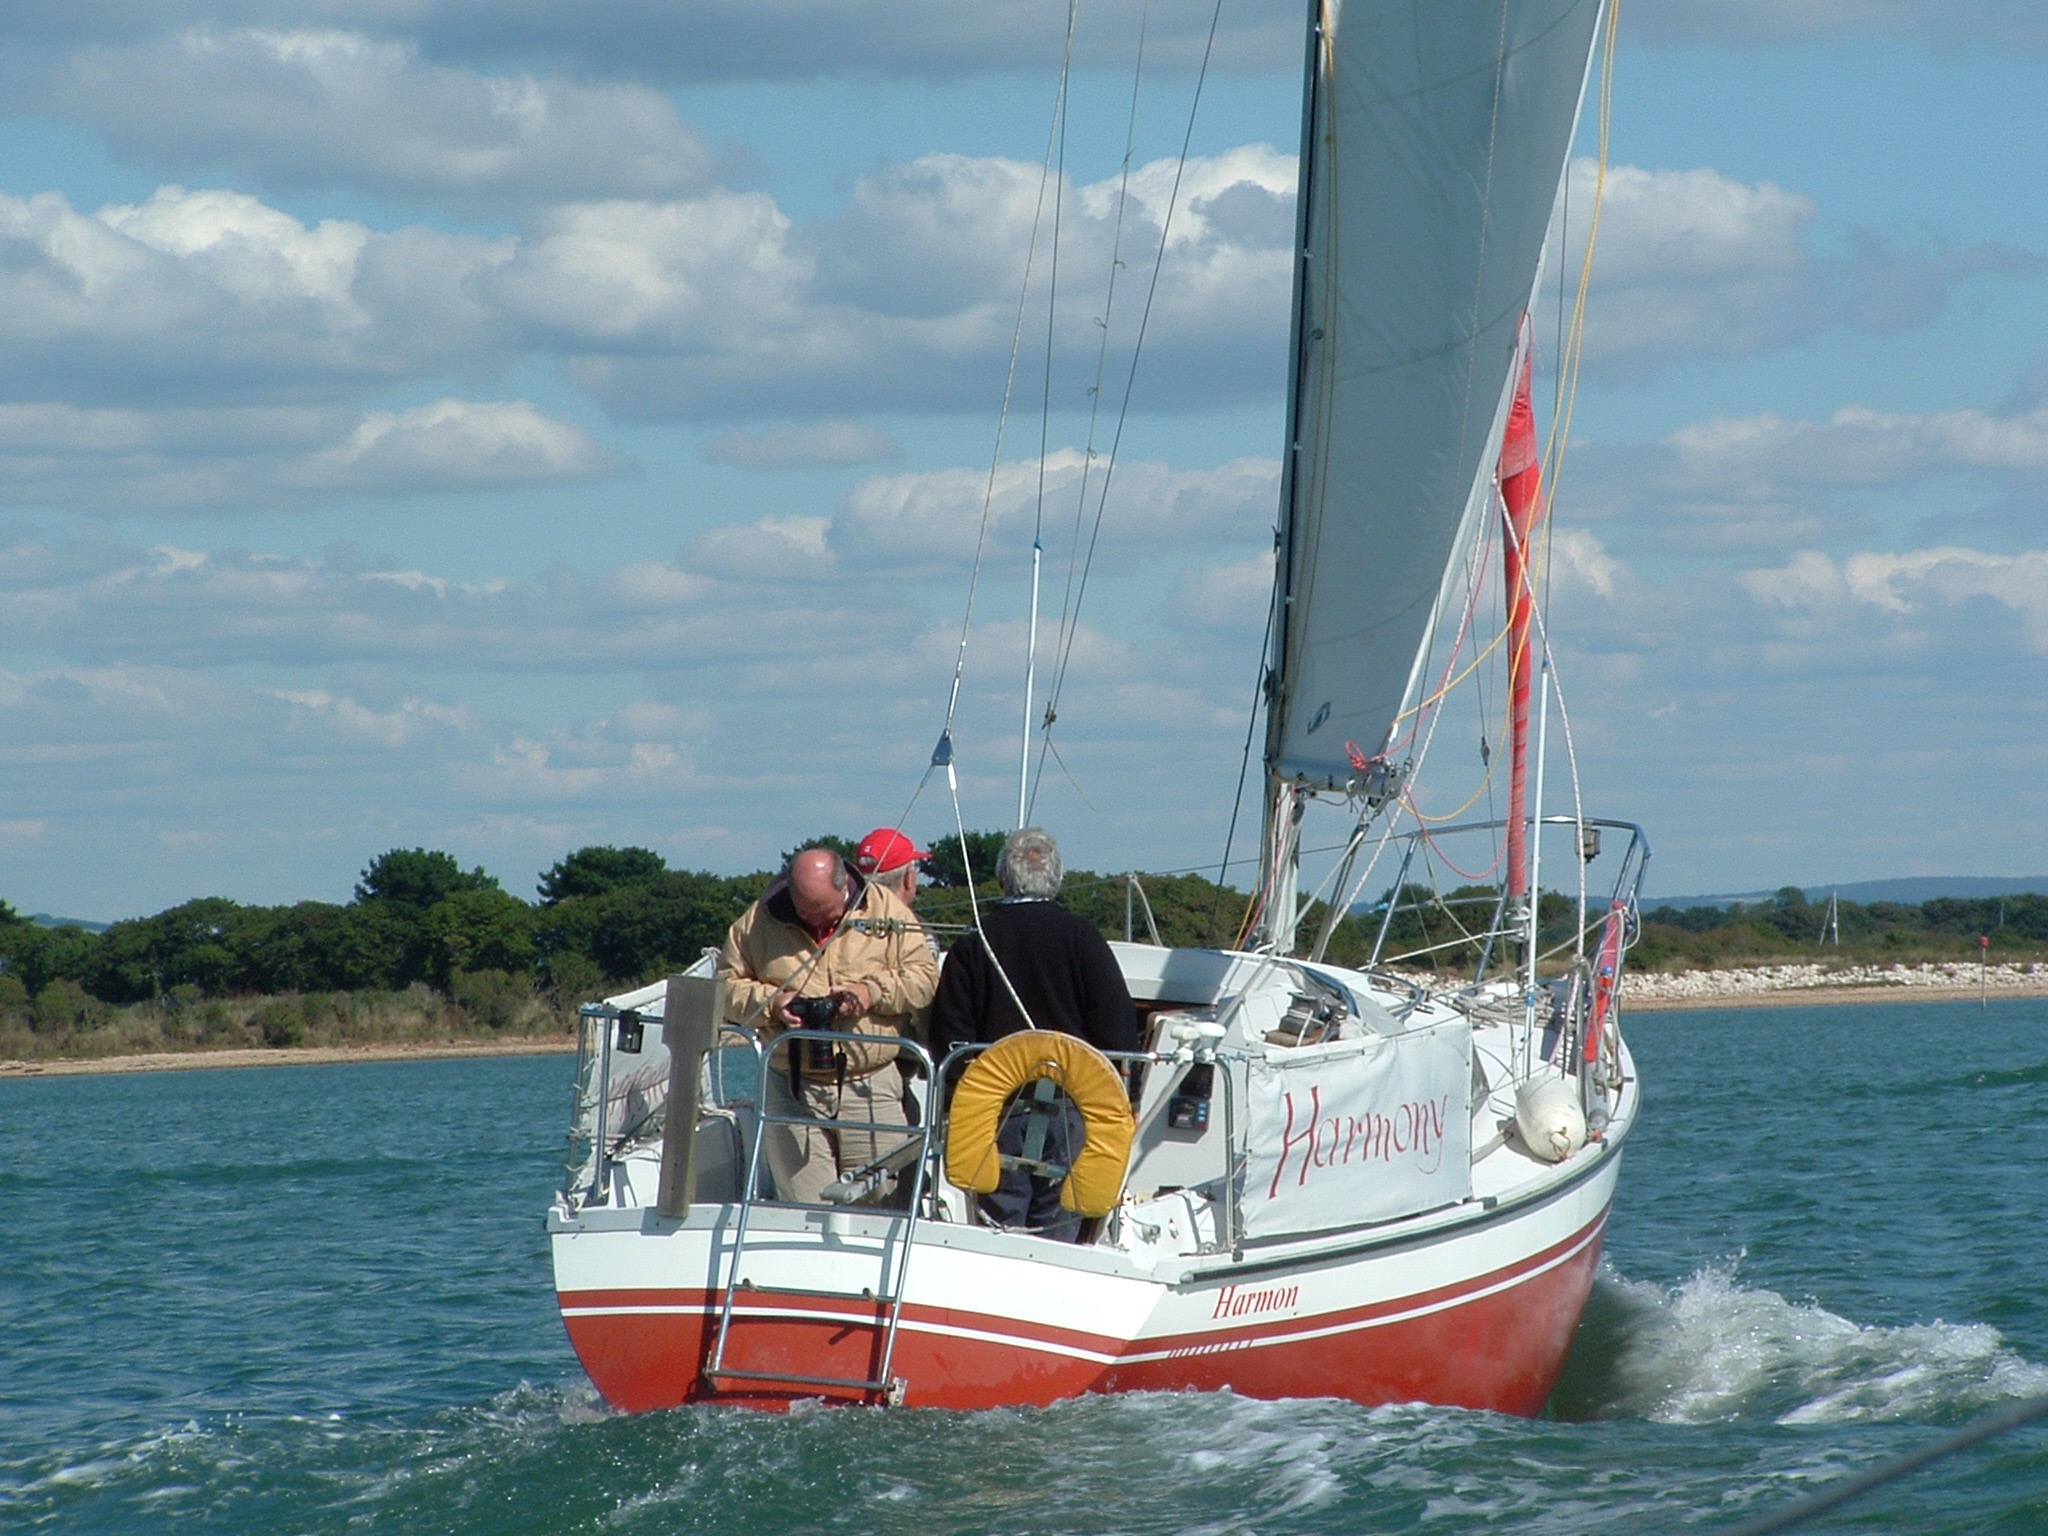 02 Harmony sails into Chichester